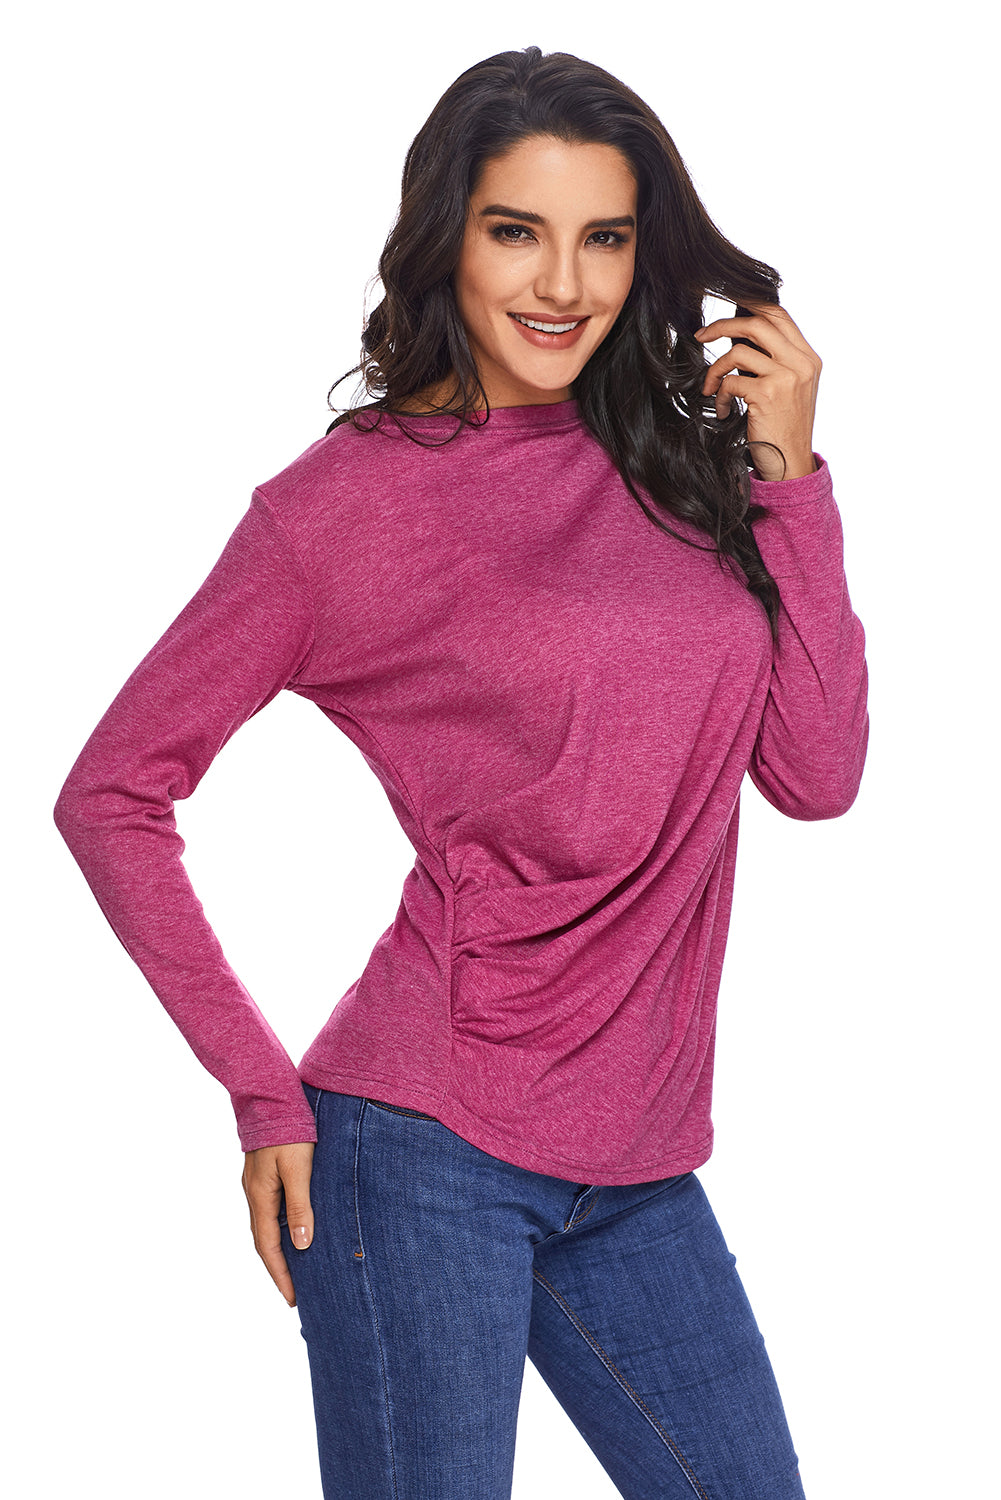 Lilac Draped Round Neck Sweatshirt for Women